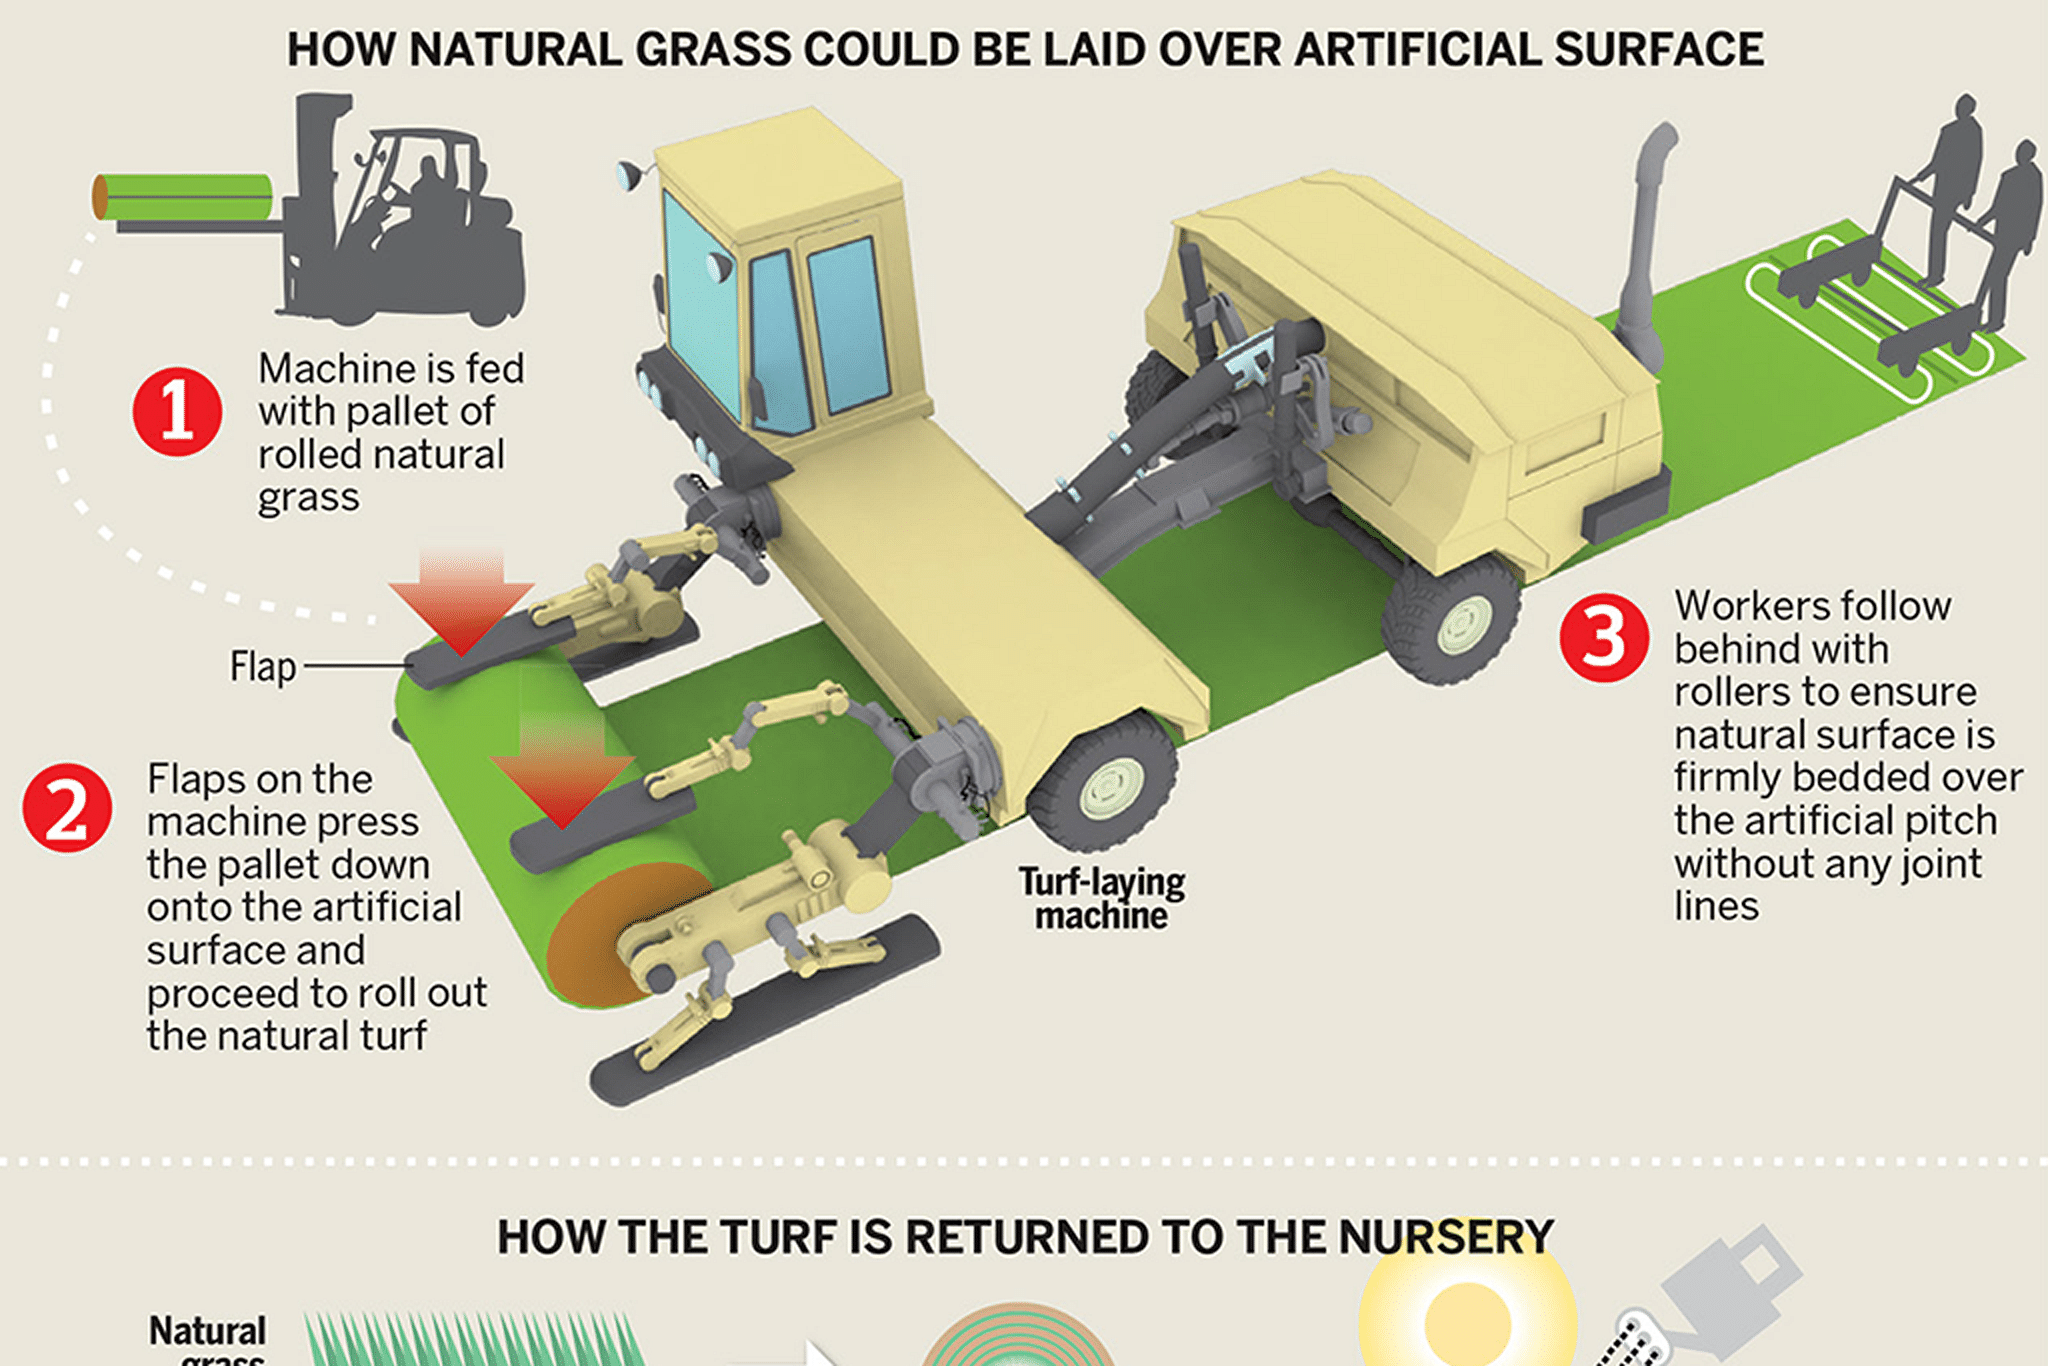 How natural grass could be laid over artificial surface